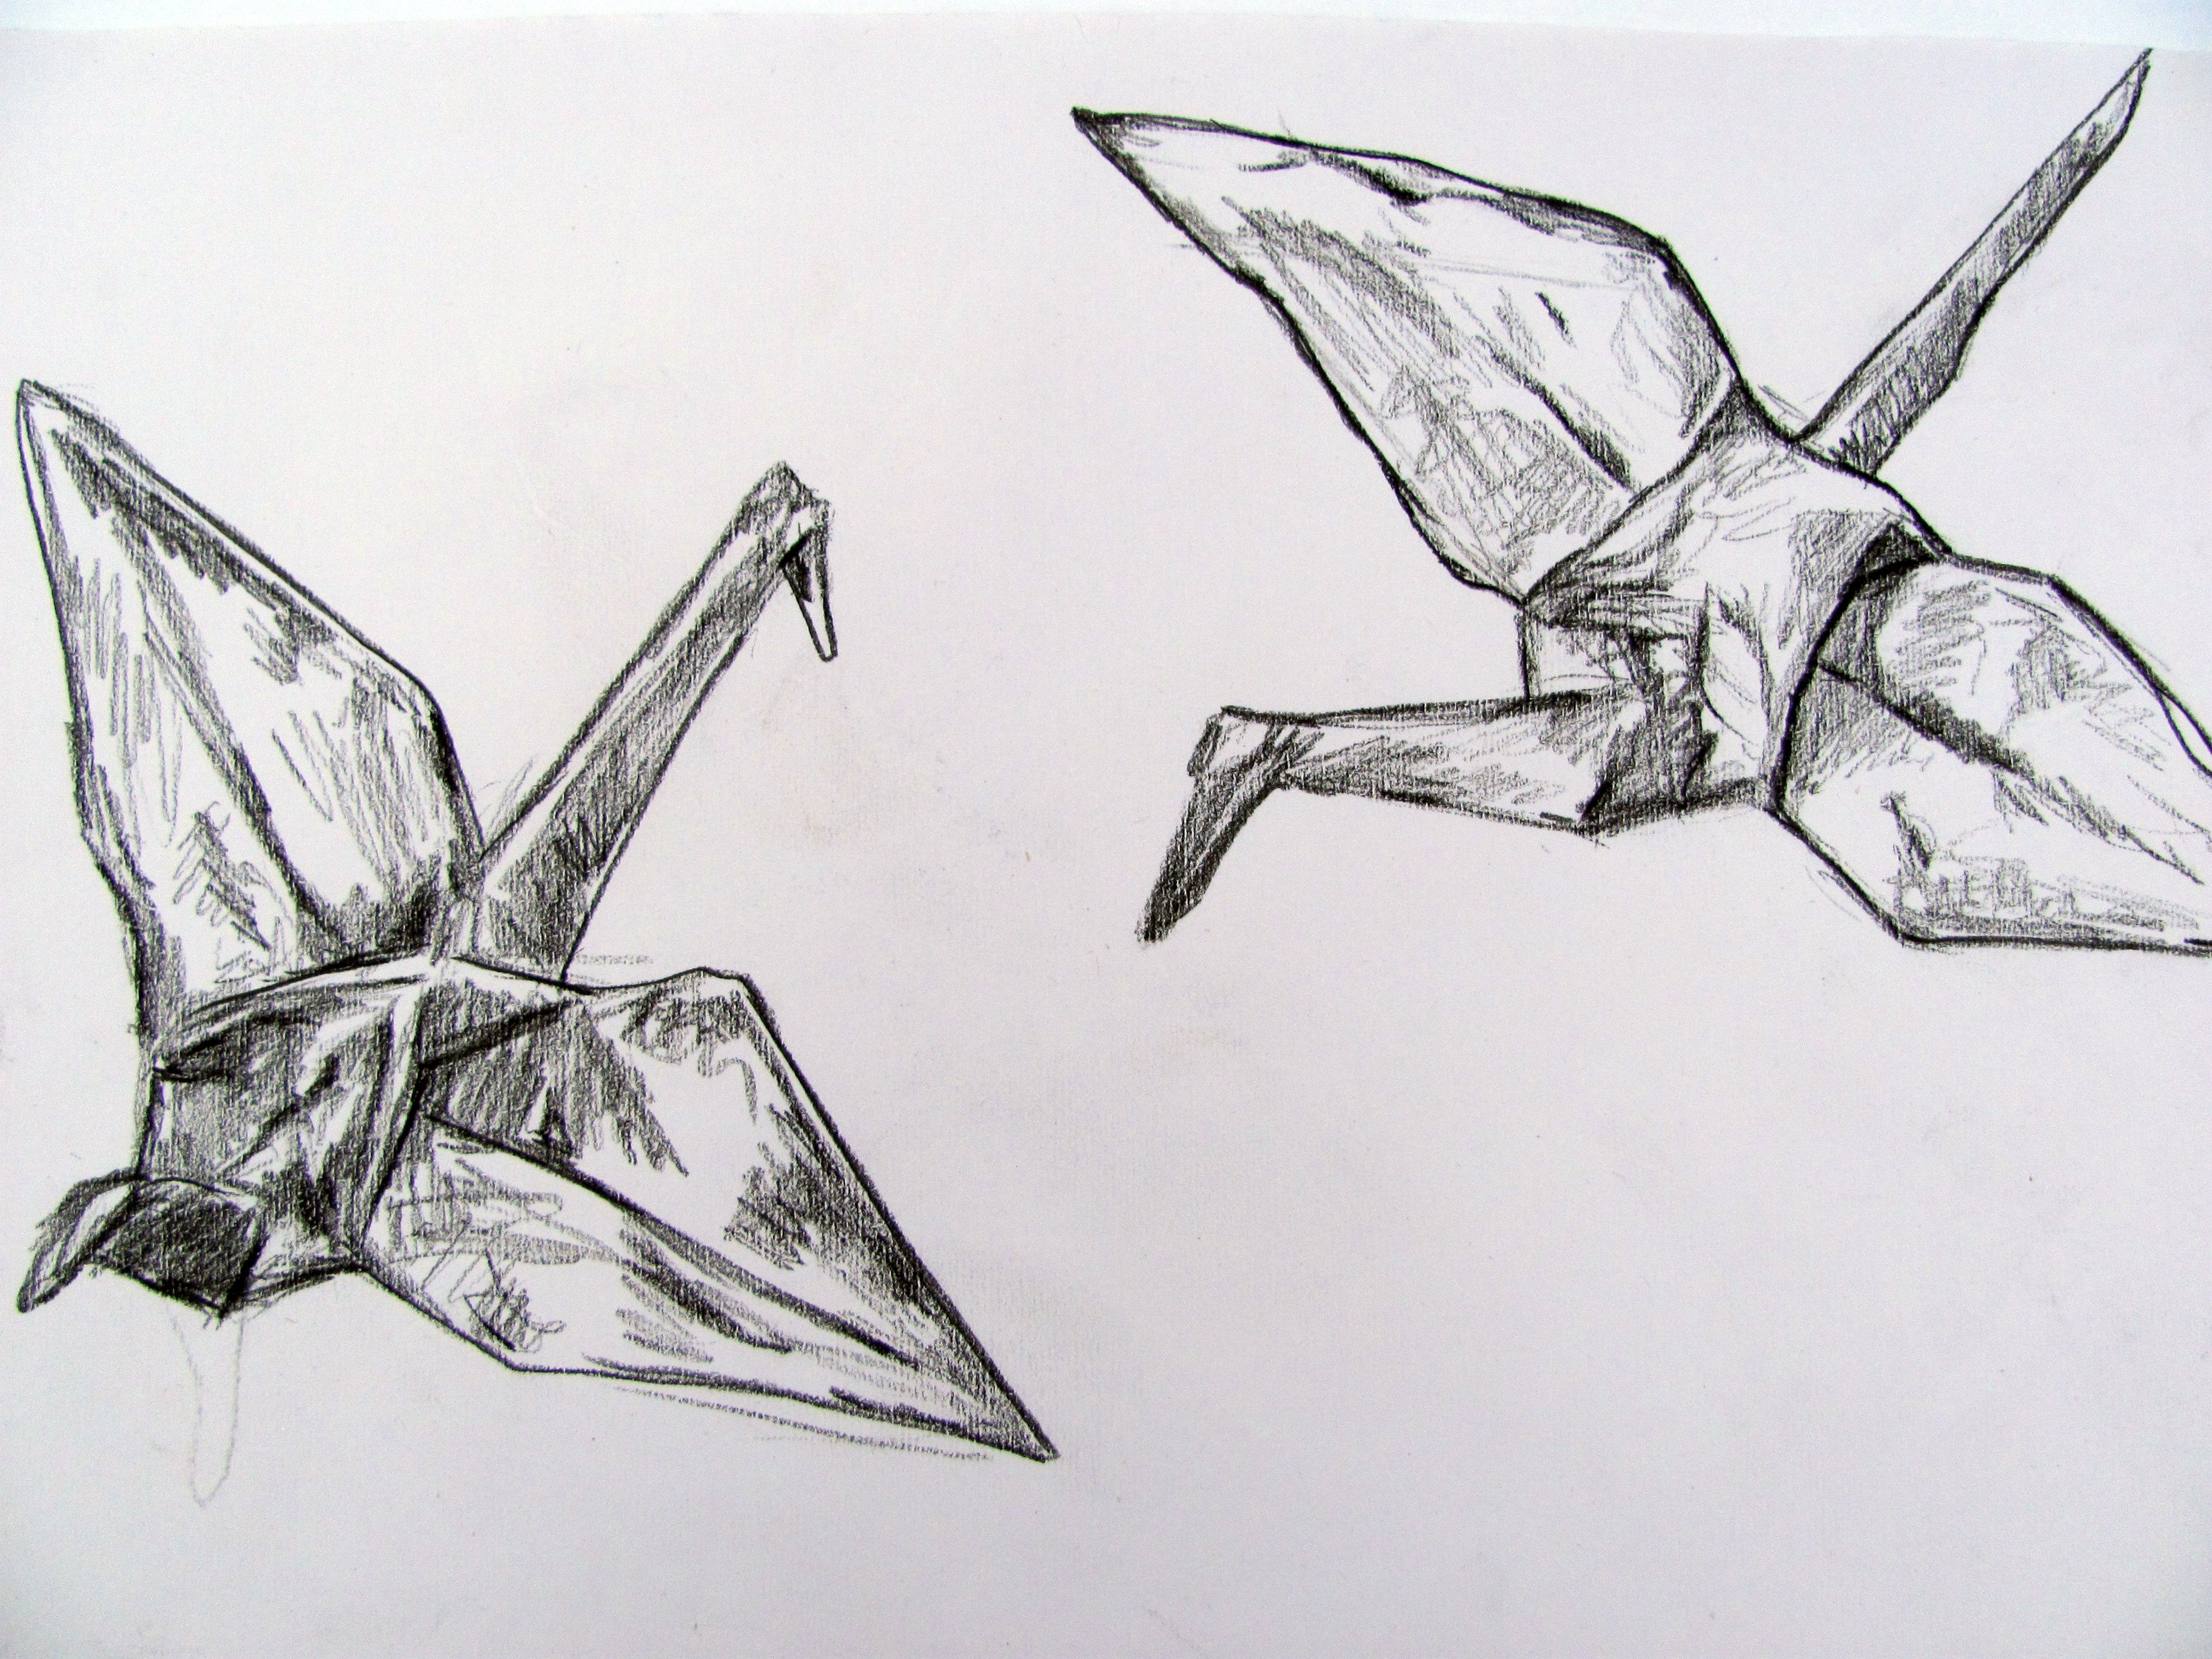 Paper crane drawing alice thatcher 2012 origami drawing objective students will be able to using hand made pieces of origami create a drawing using an original composition and demonstrate the requirements jeuxipadfo Choice Image